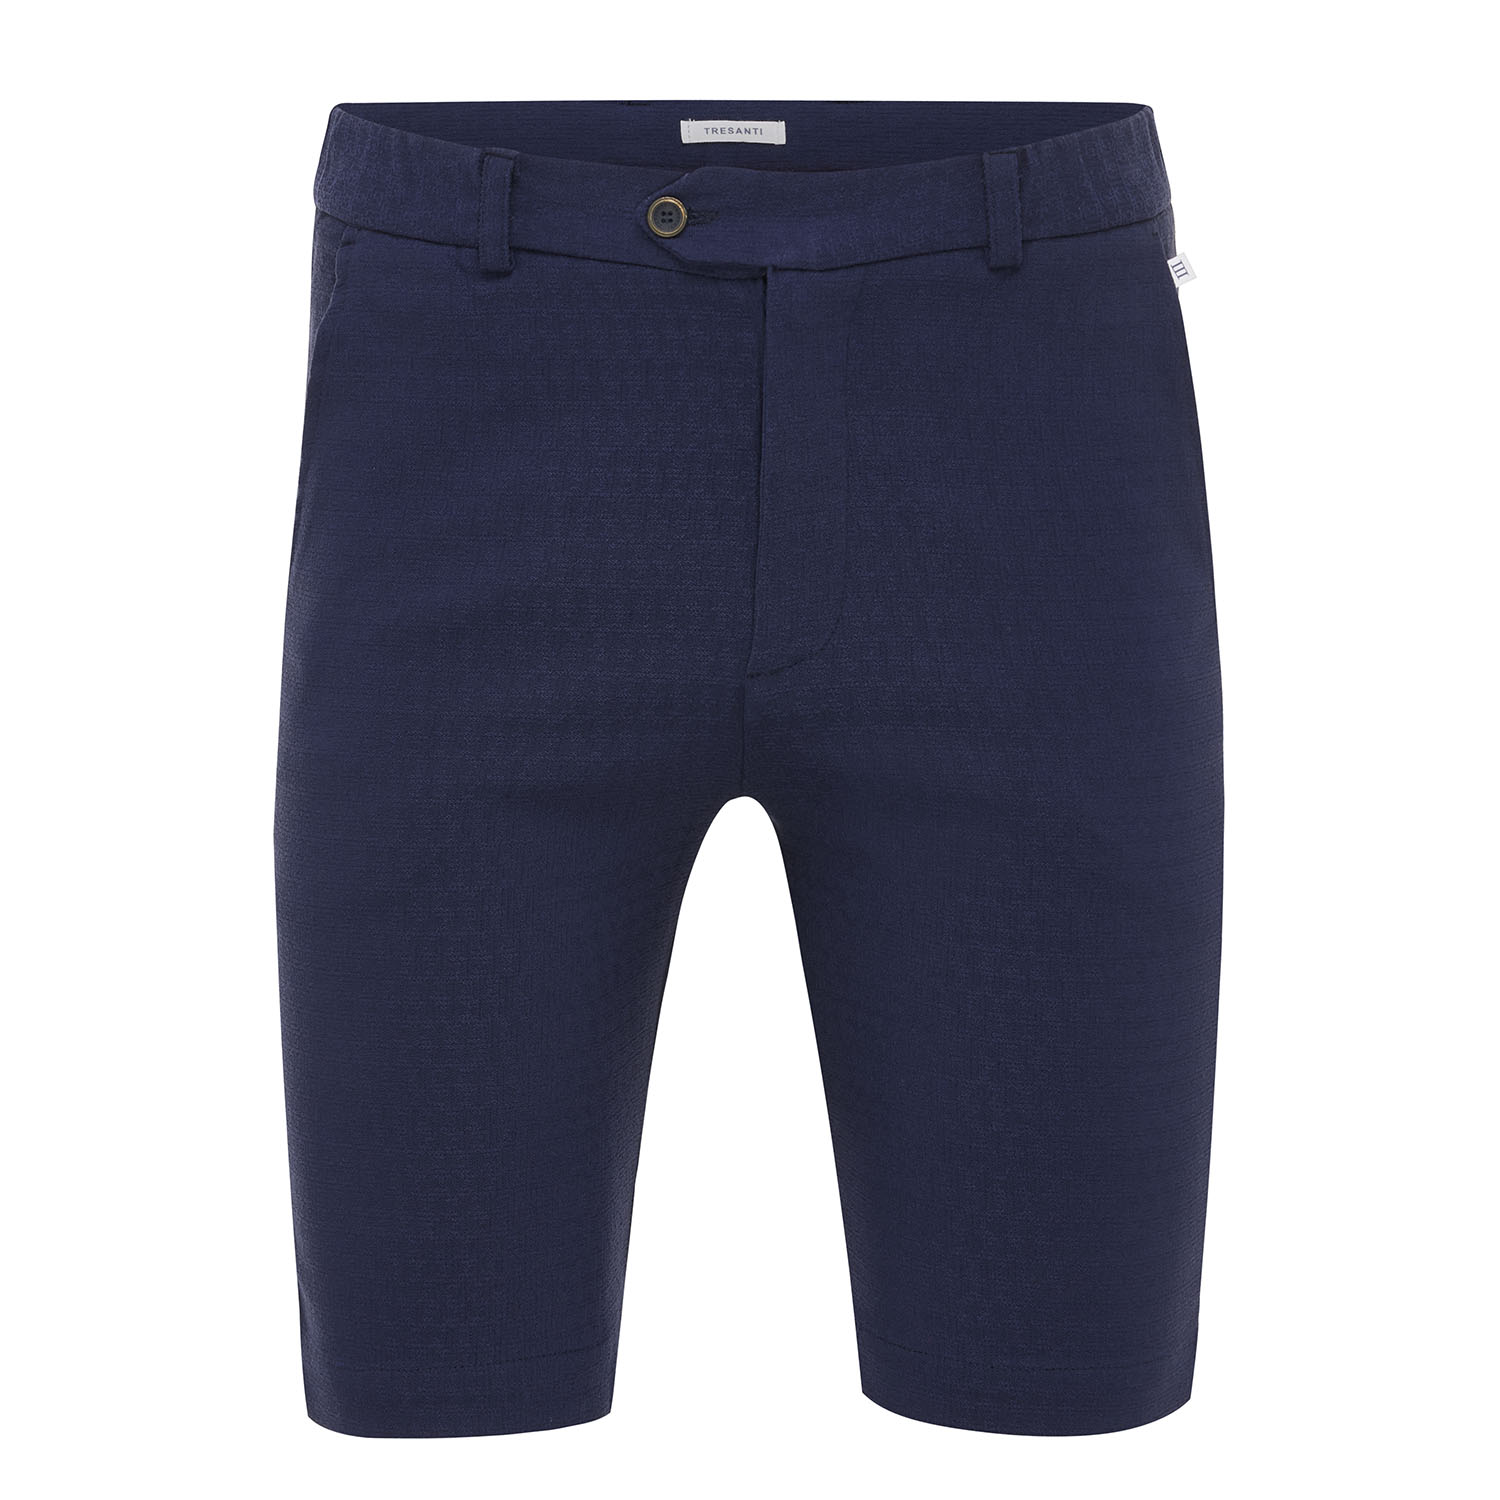 Matthew | Shorts navy structure